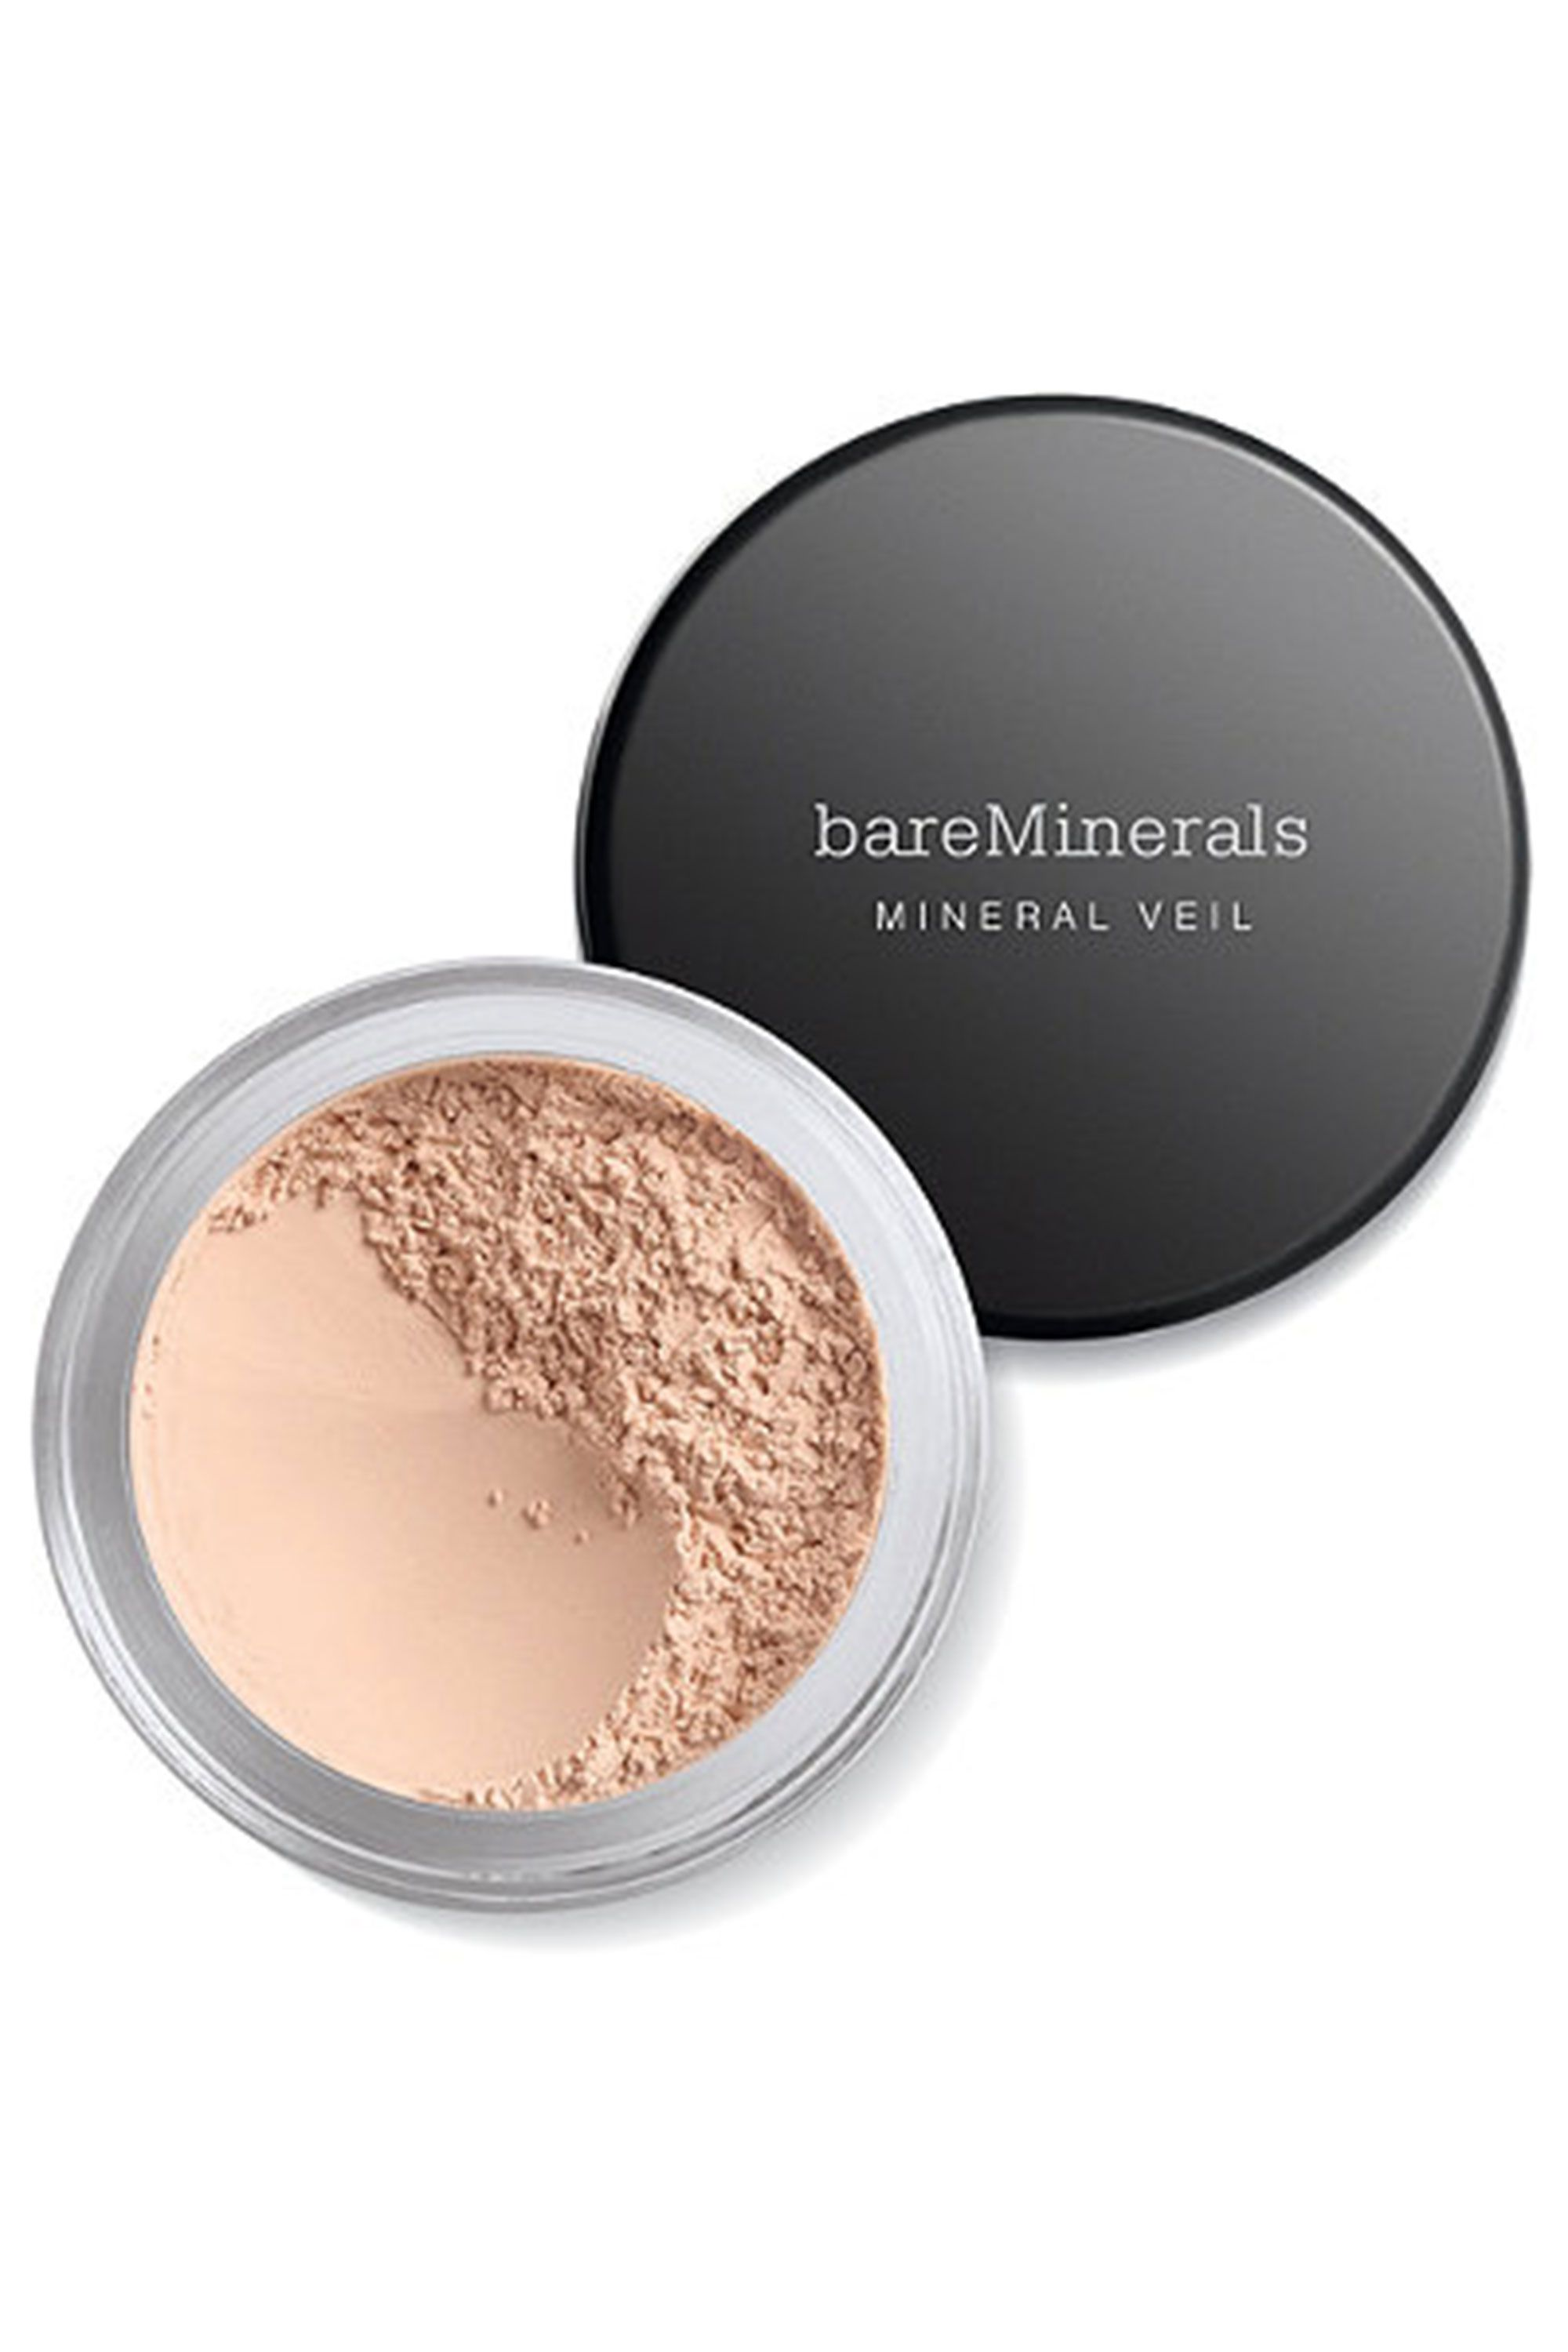 Best face powder for wrinkles